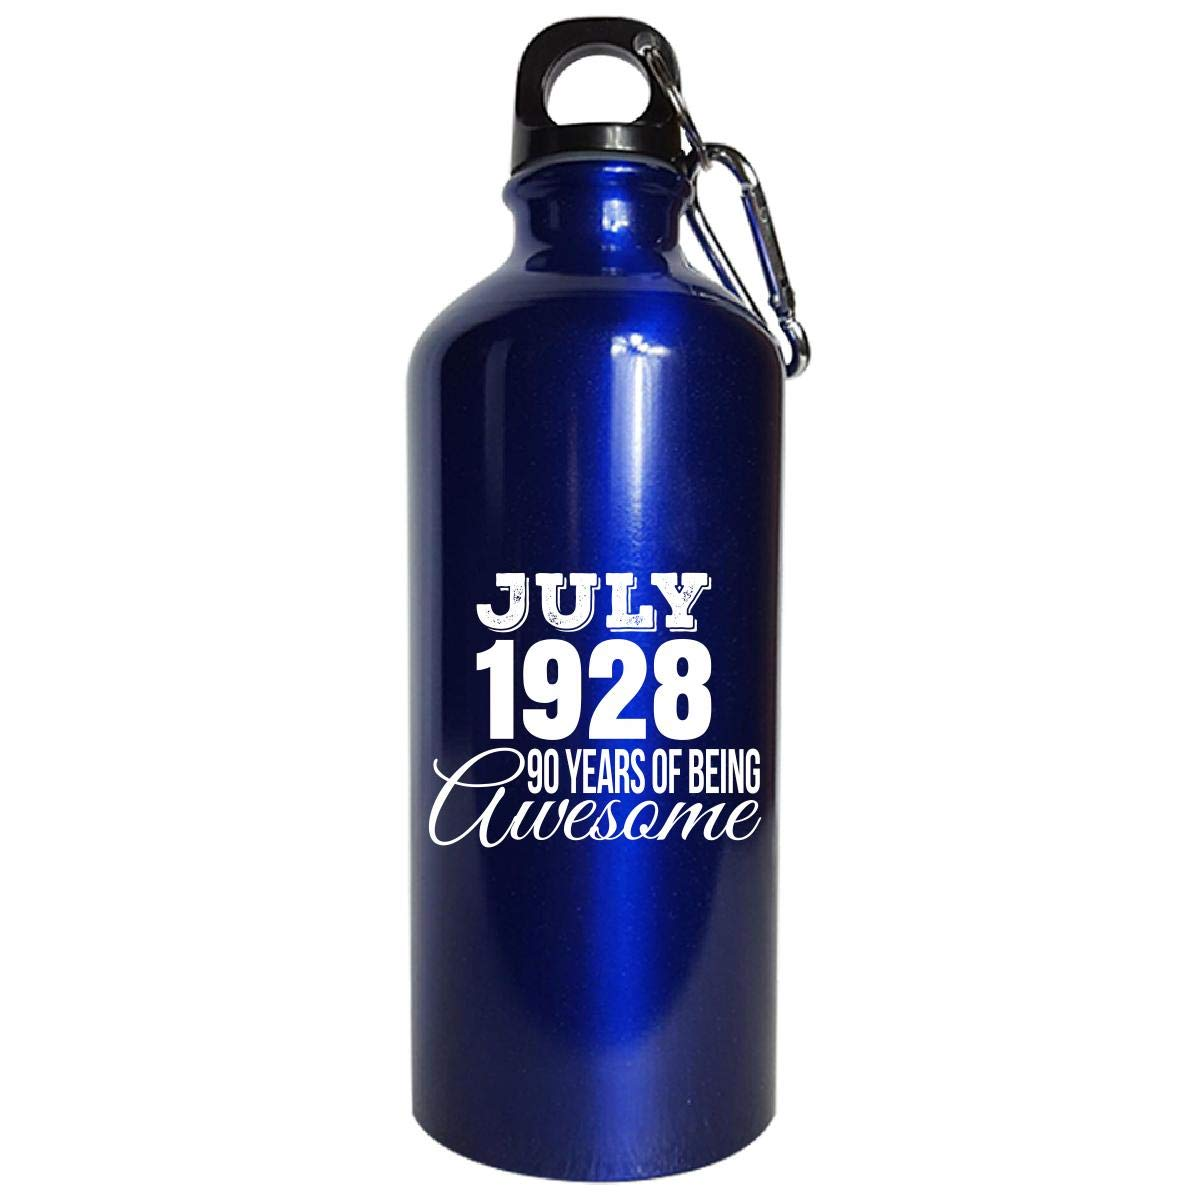 July 1928 90 Years Of Being Awesome Funny Birthday Gift - Water Bottle Metallic Blue by Shirt Luv (Image #1)